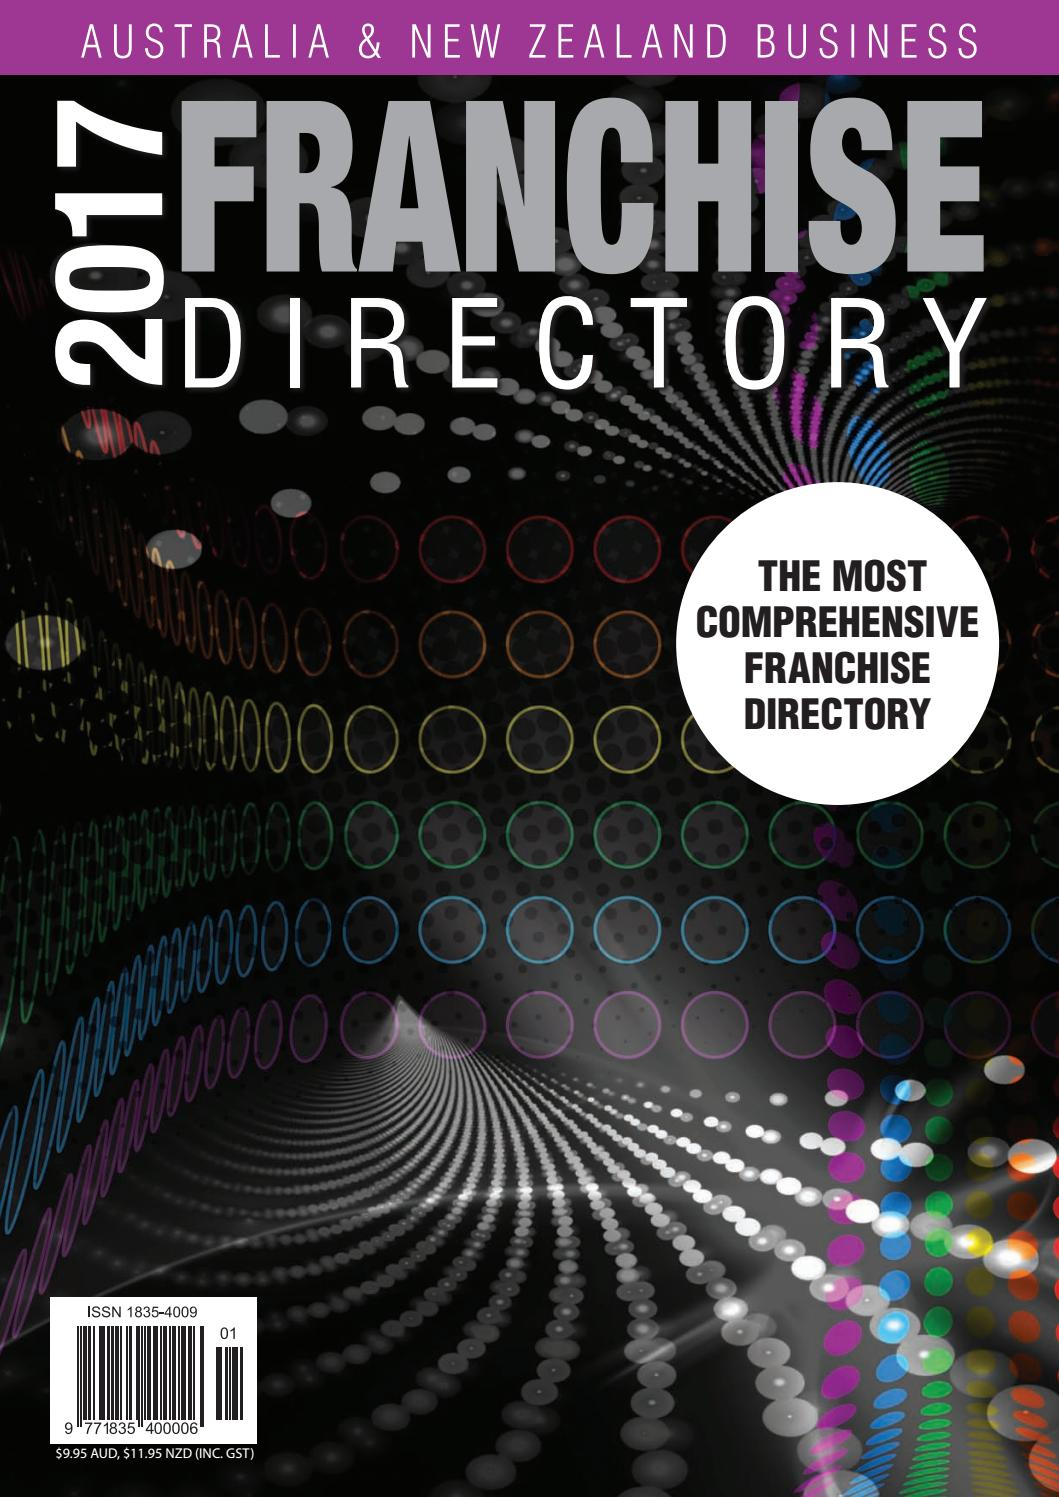 2017 Aus Nz Business Franchise Directory By Cgb Publishing Issuu Ecotec Wiring Harness Standalone